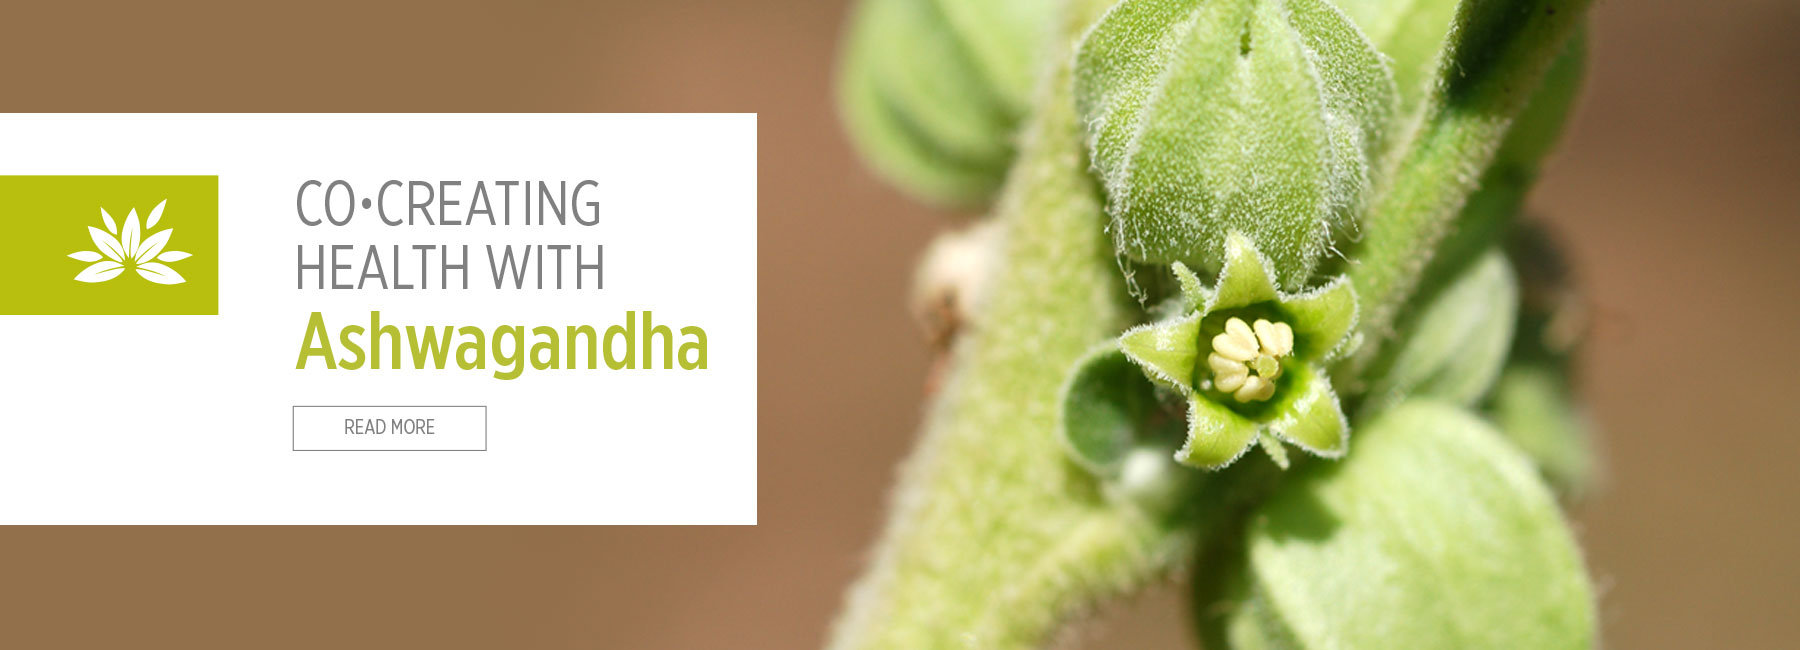 Co-Creating Health with Ashwagandha